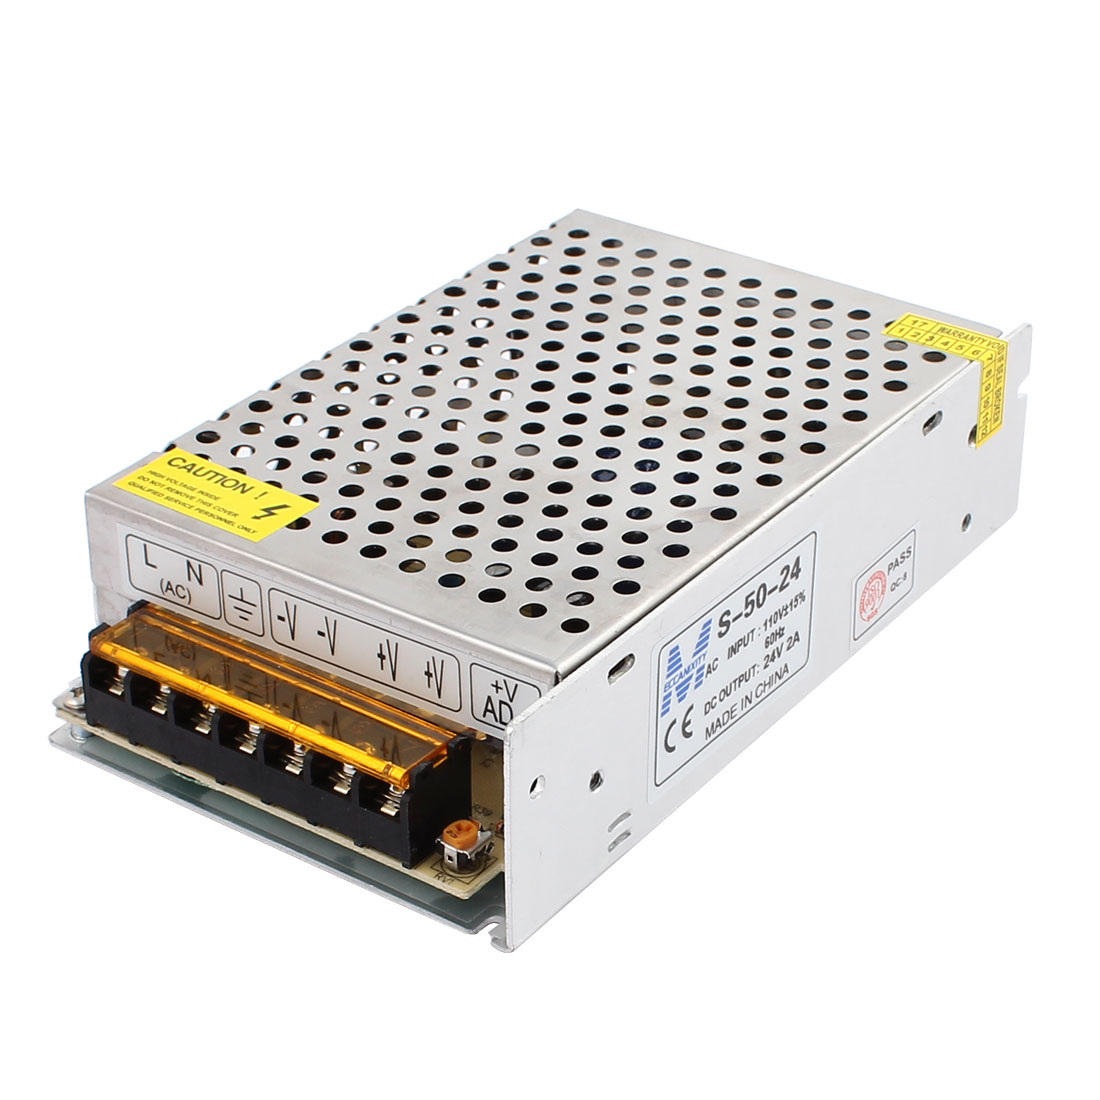 110/220V 24V 2A 48W Switching Power Supply Adapter Driver for